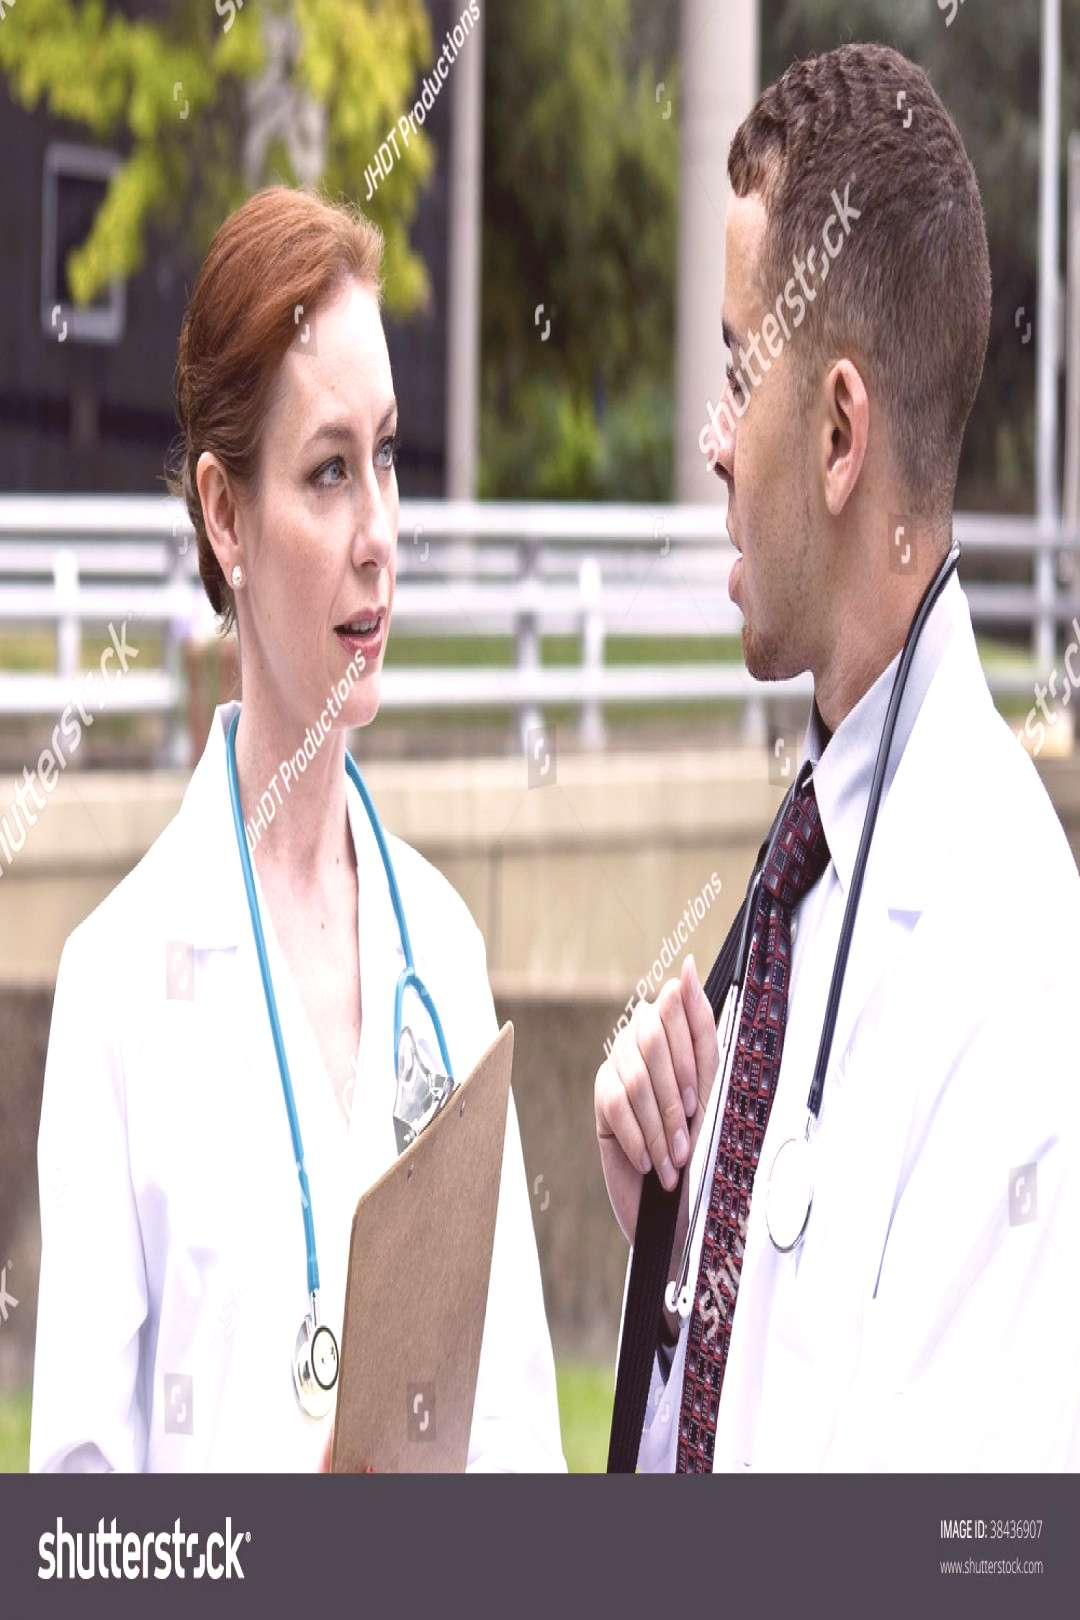 Two doctors on break in a city green space, engaged in friendly conversation. ,